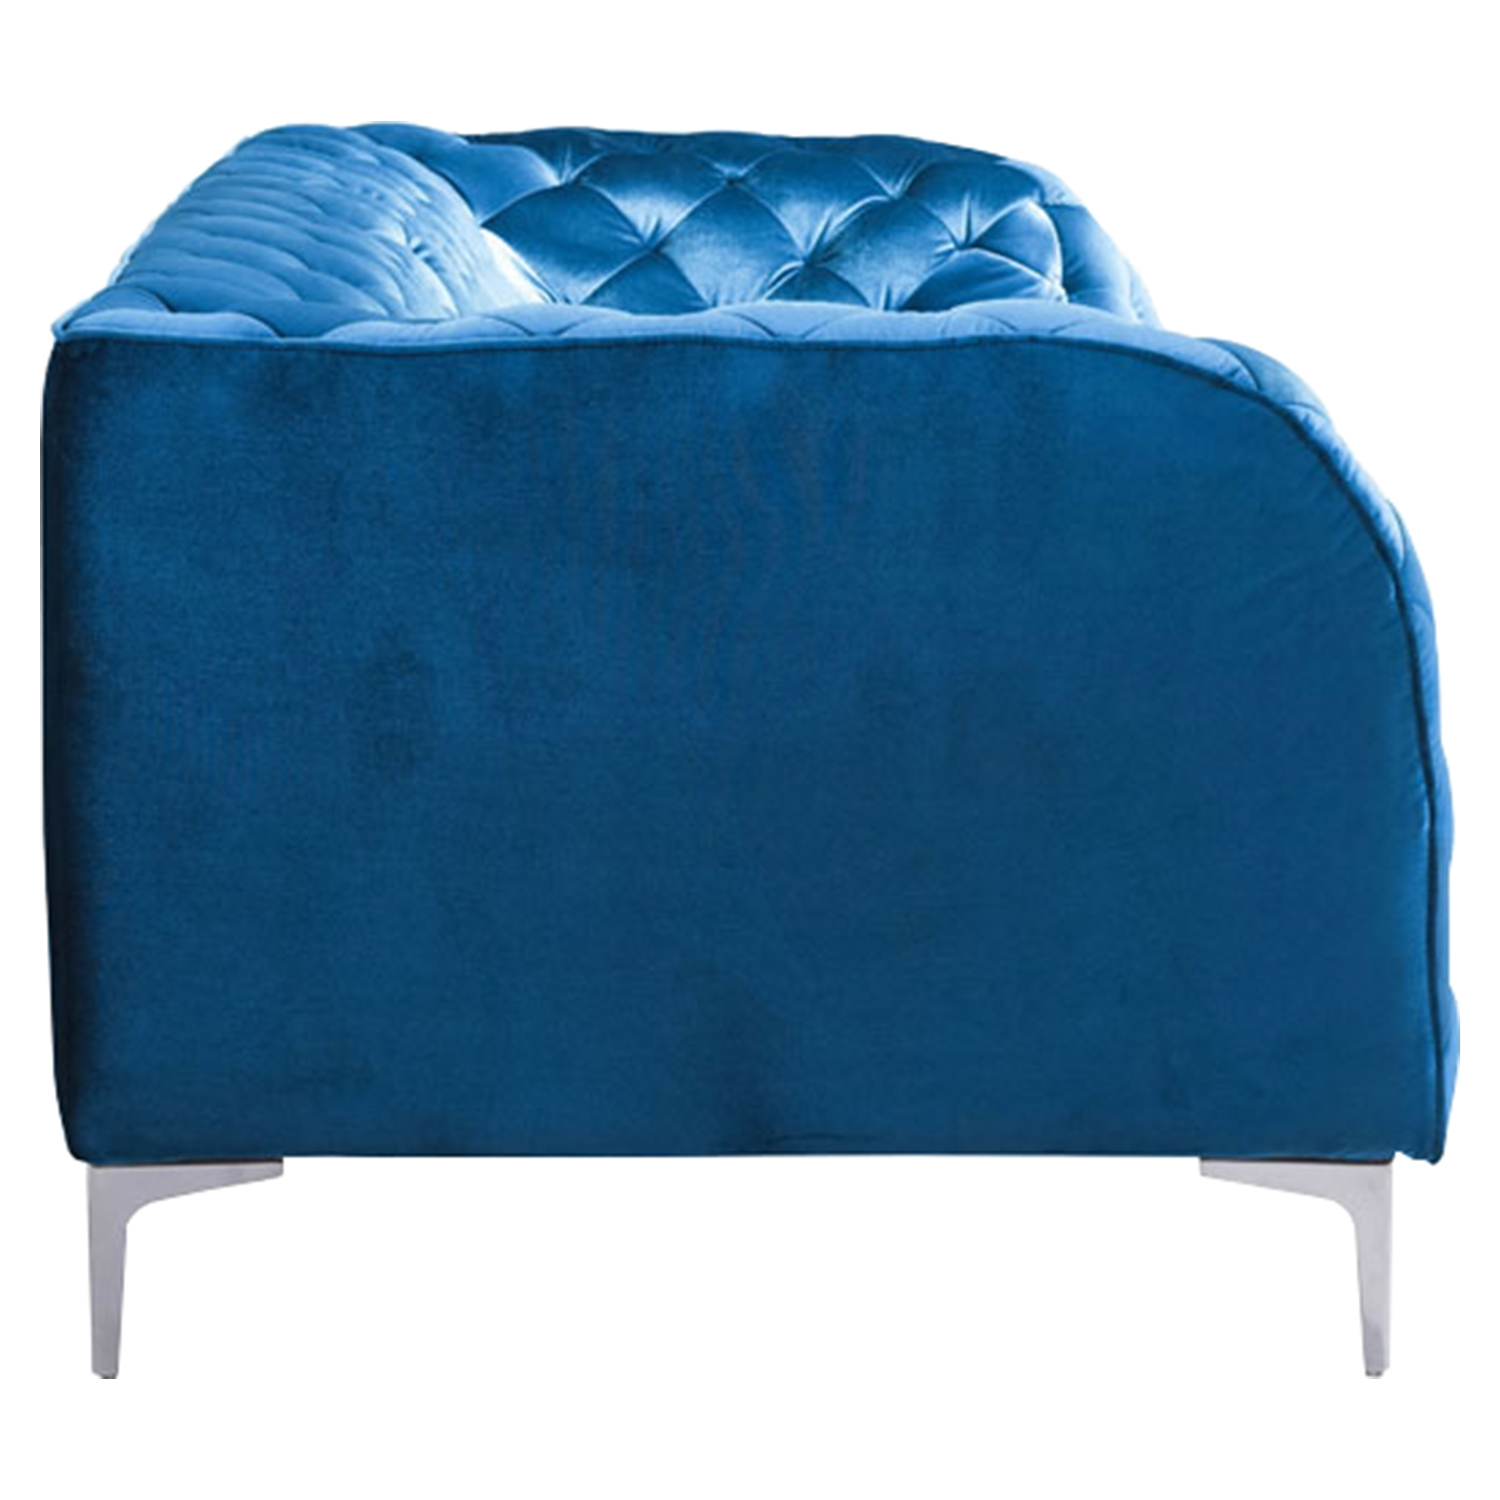 Providence Sofa - Tufted, Blue Velvet - ZM-900282